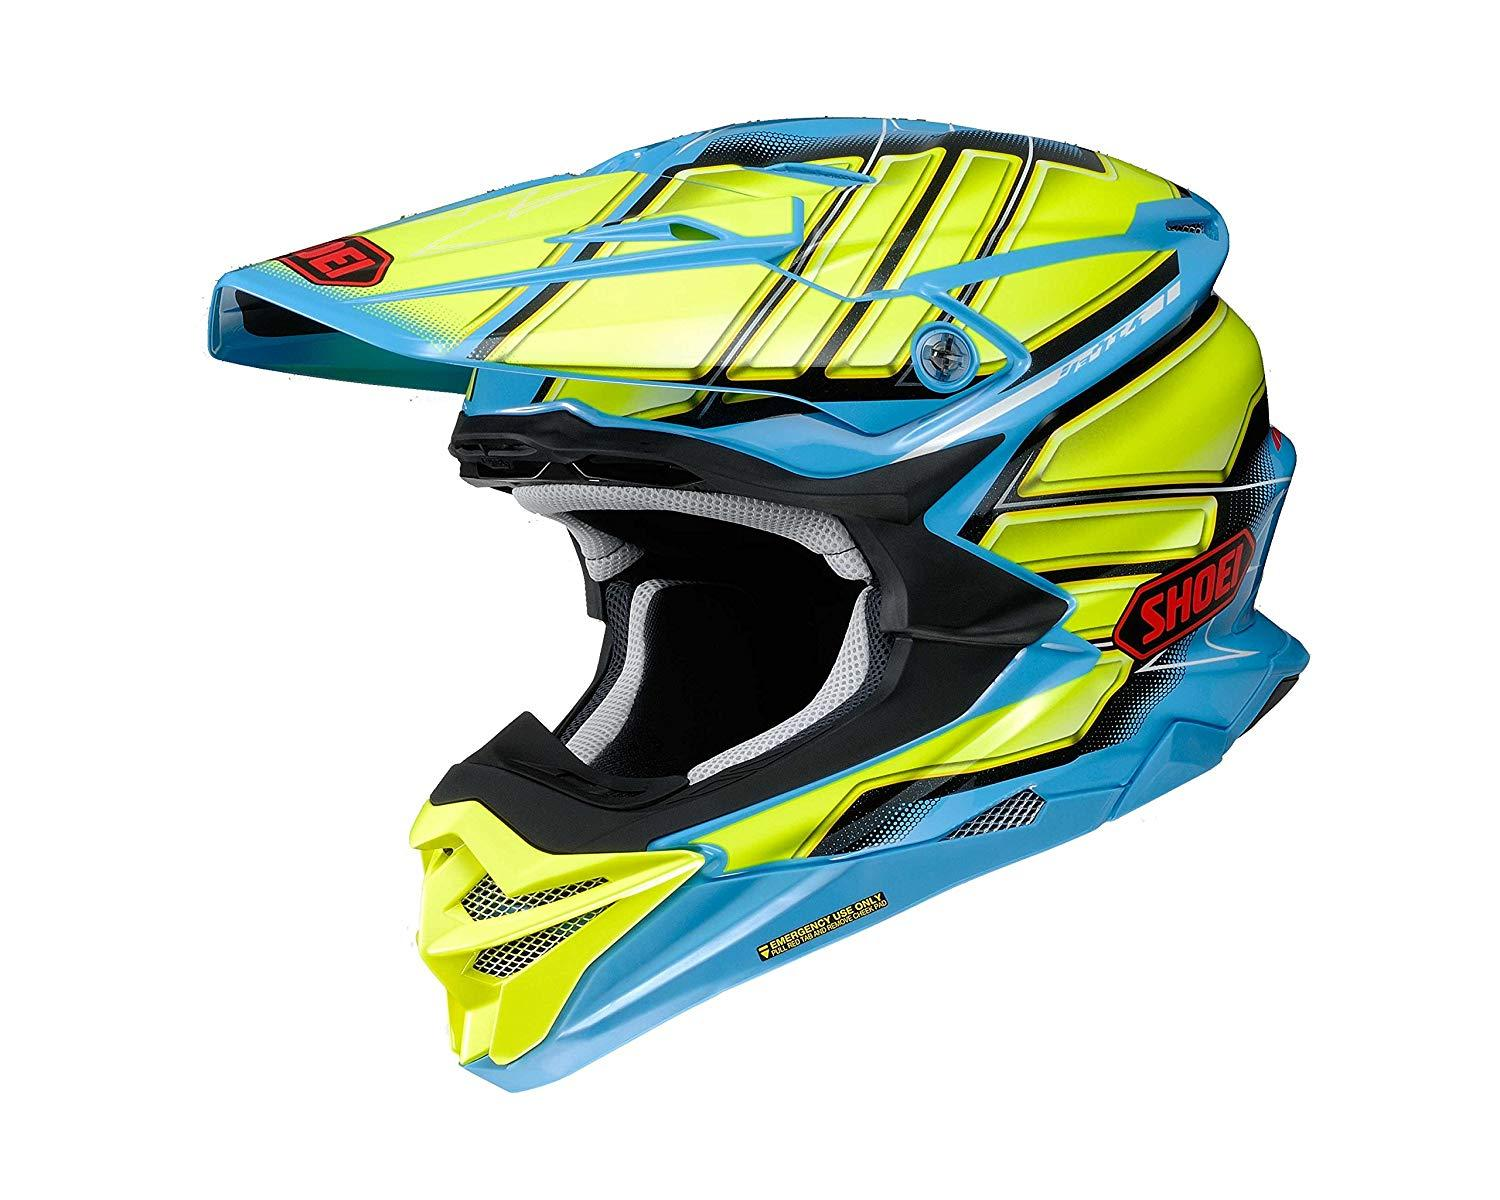 SHOEI 【必ず購入前に仕様をご確認下さい】VFX-WR GLAIVE TC-2 BLUE/YELLOW XL【smtb-s】